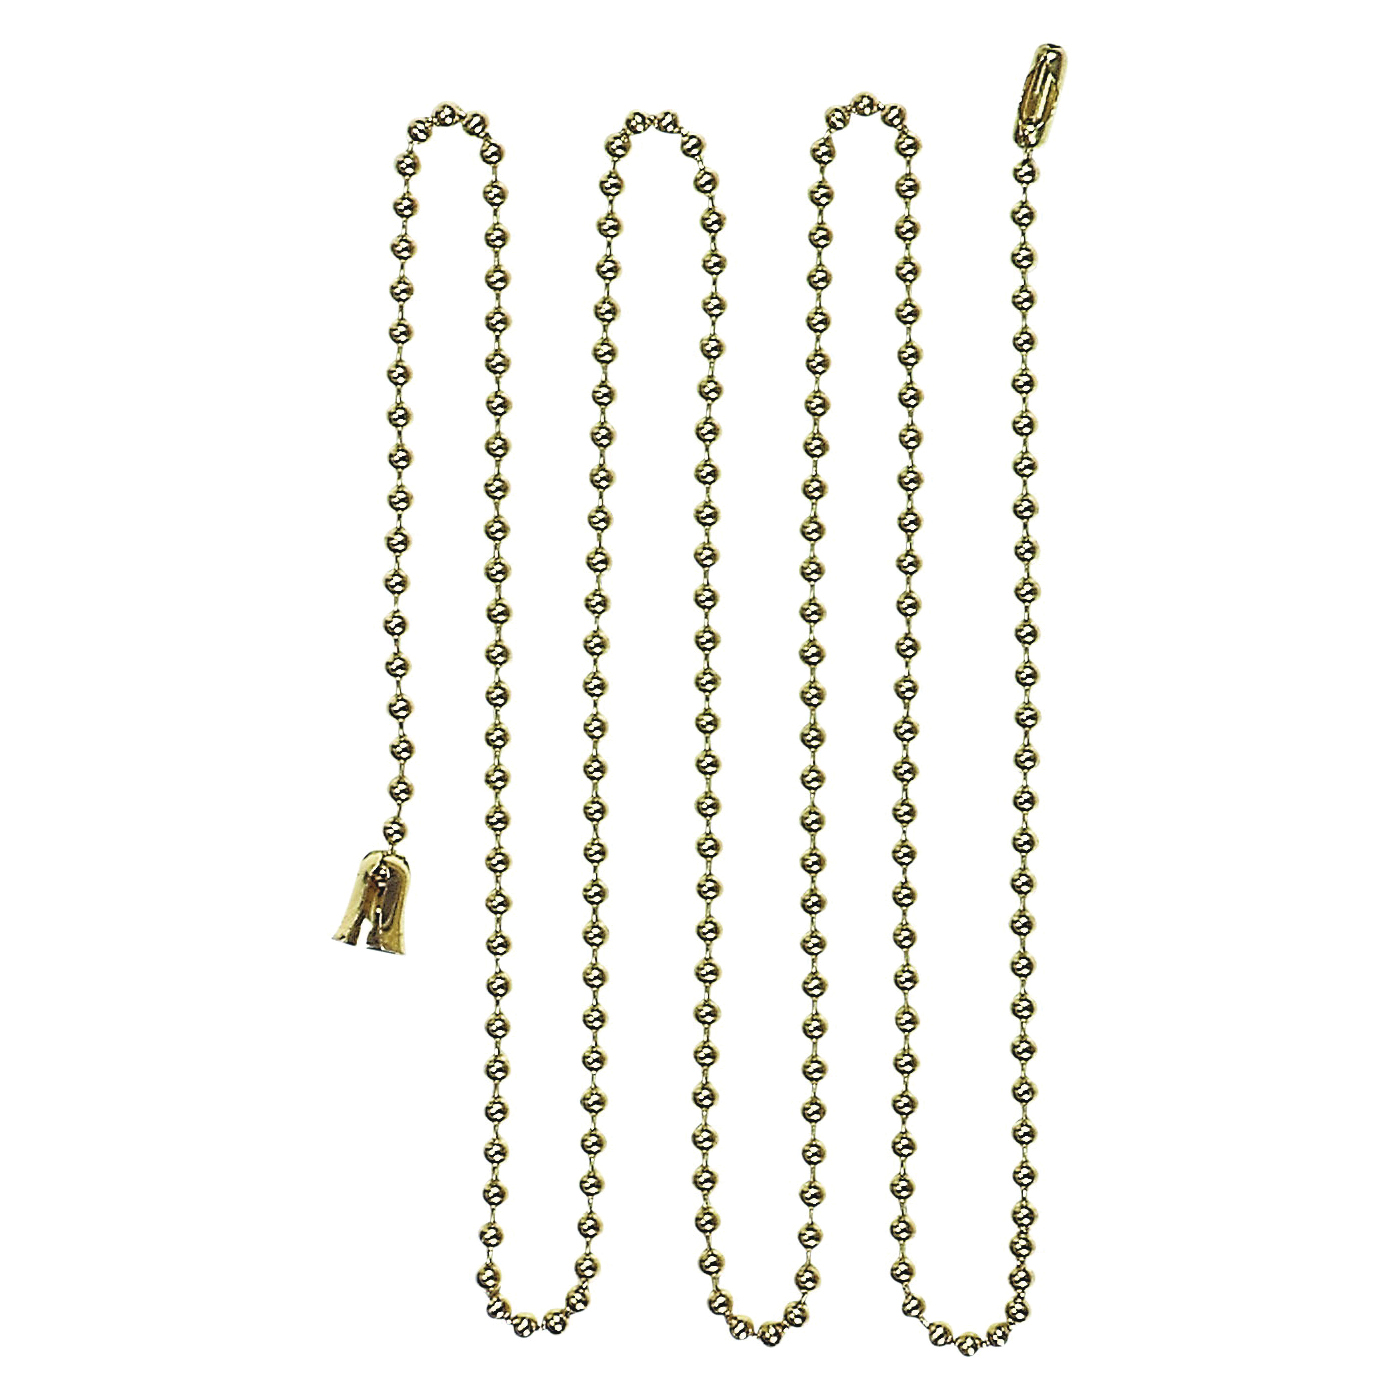 Picture of Eaton Cooper Wiring BP331BB Ball Chain with End Bell and Connector, #6 Chain, 3 ft L Chain, Brass